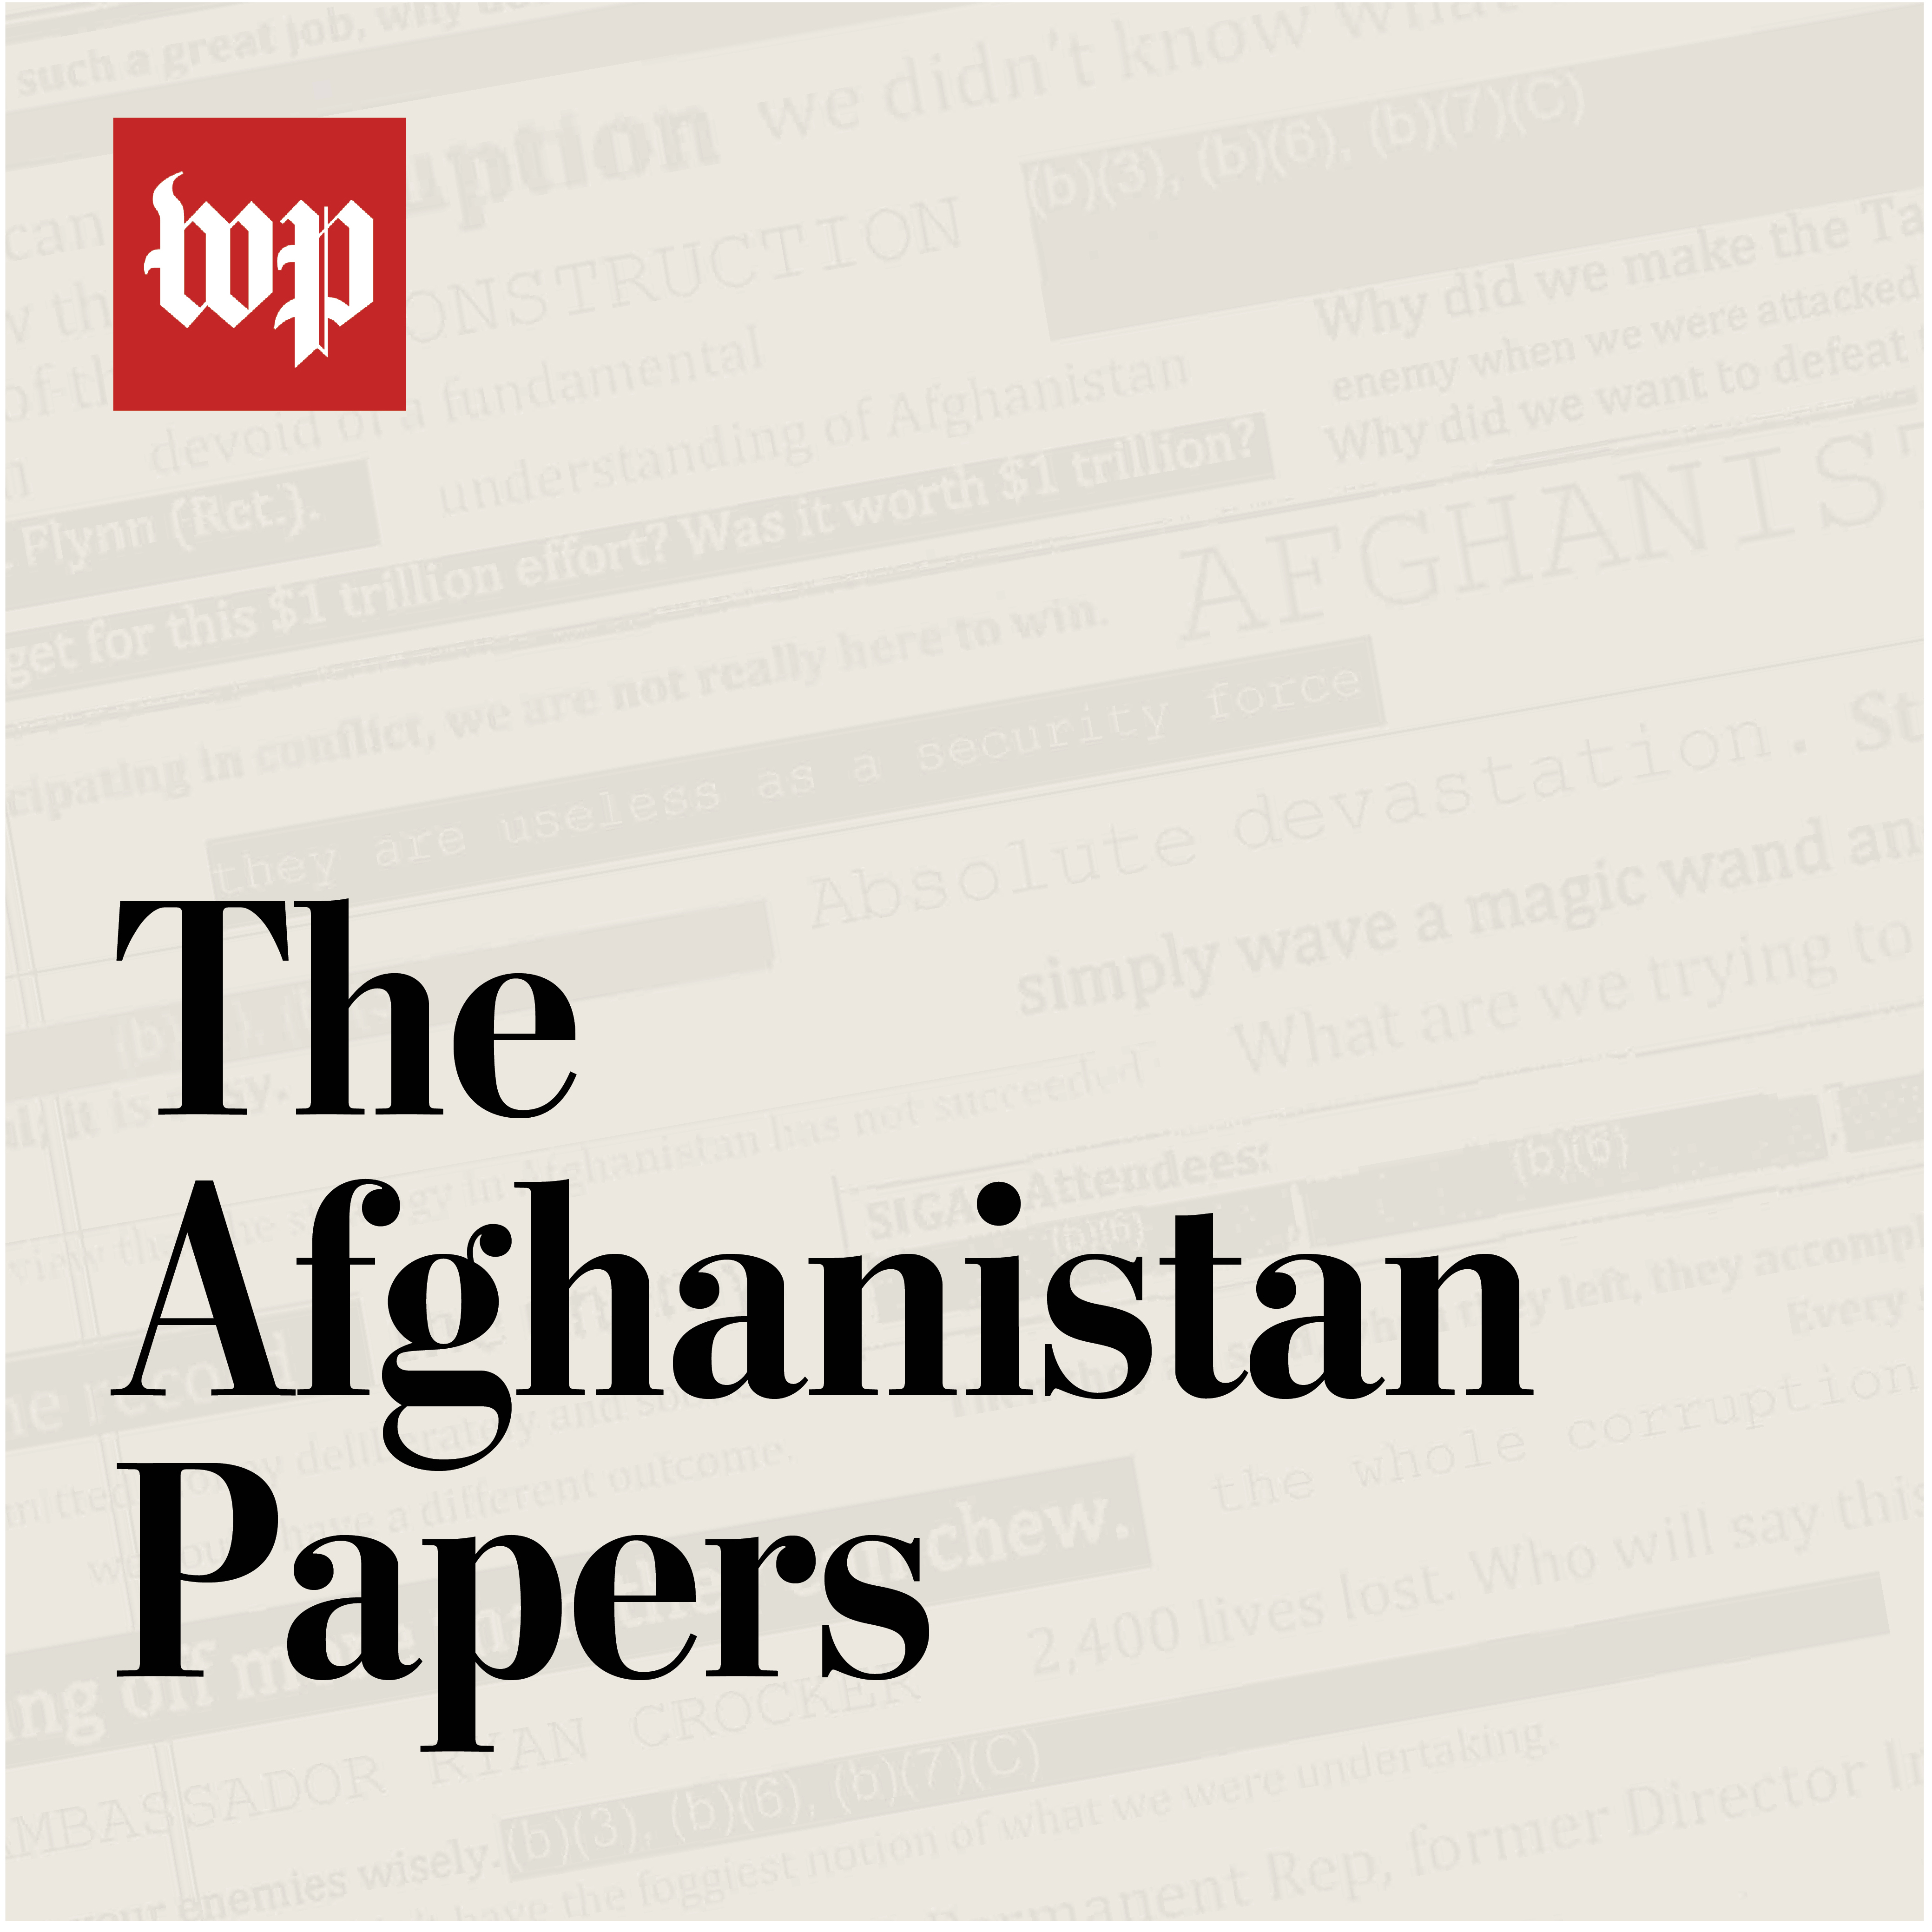 Afghanistanpaperspodcast__1__small